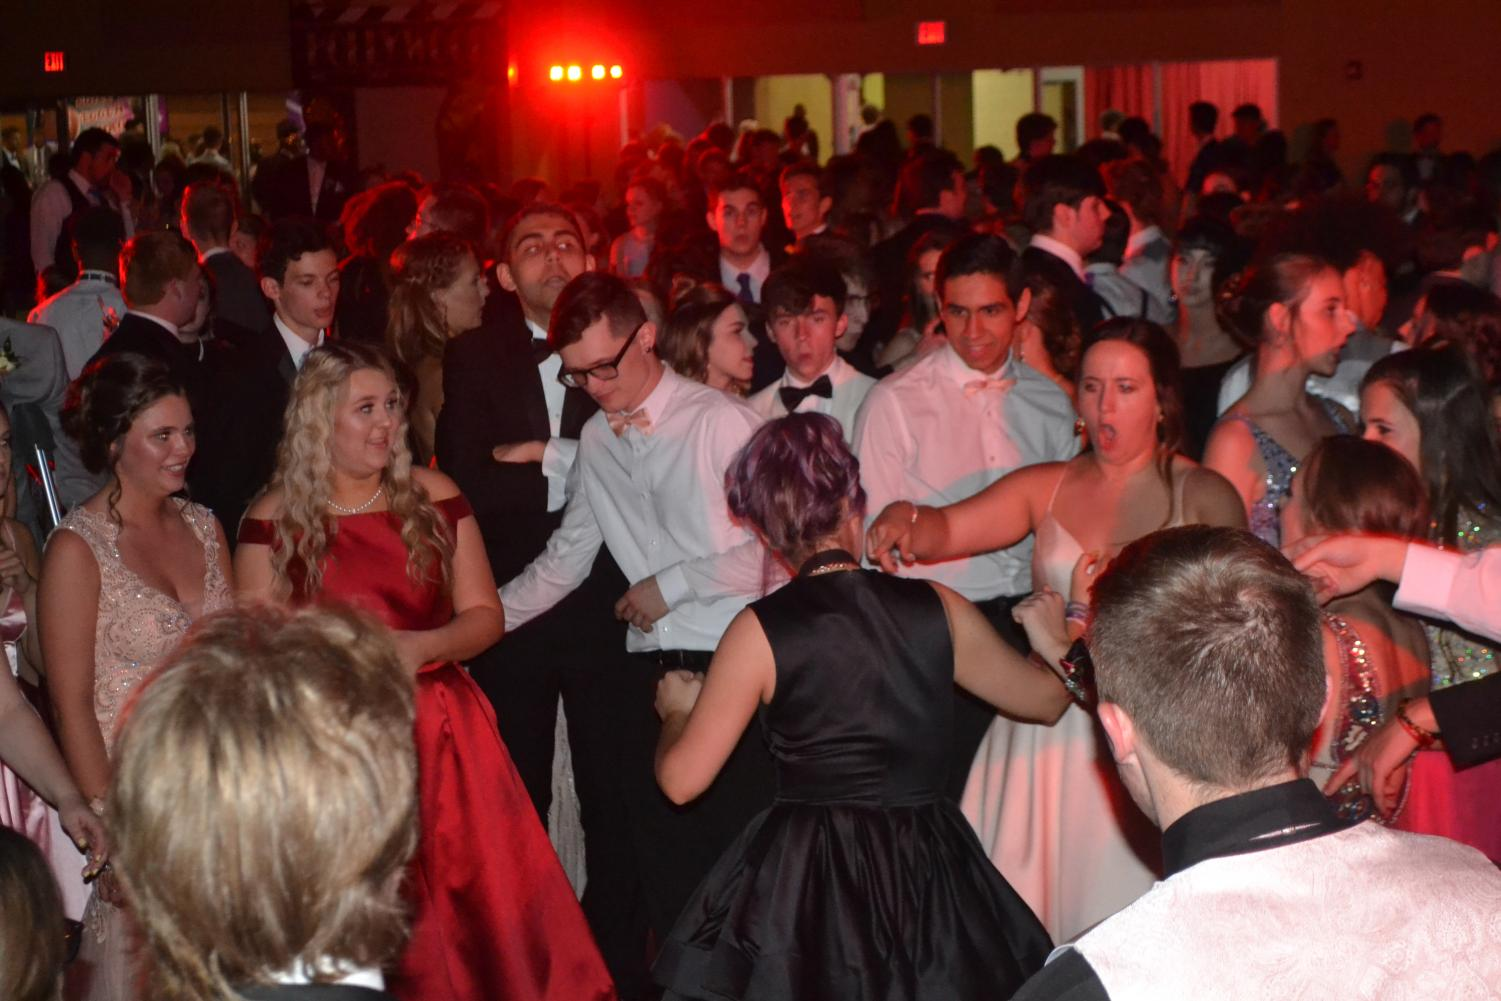 The+dance+floor+was+packed+on+Saturday%2C+April+13th%2C+as+SCHS+hosted+%22Old+Hollywood.%22++